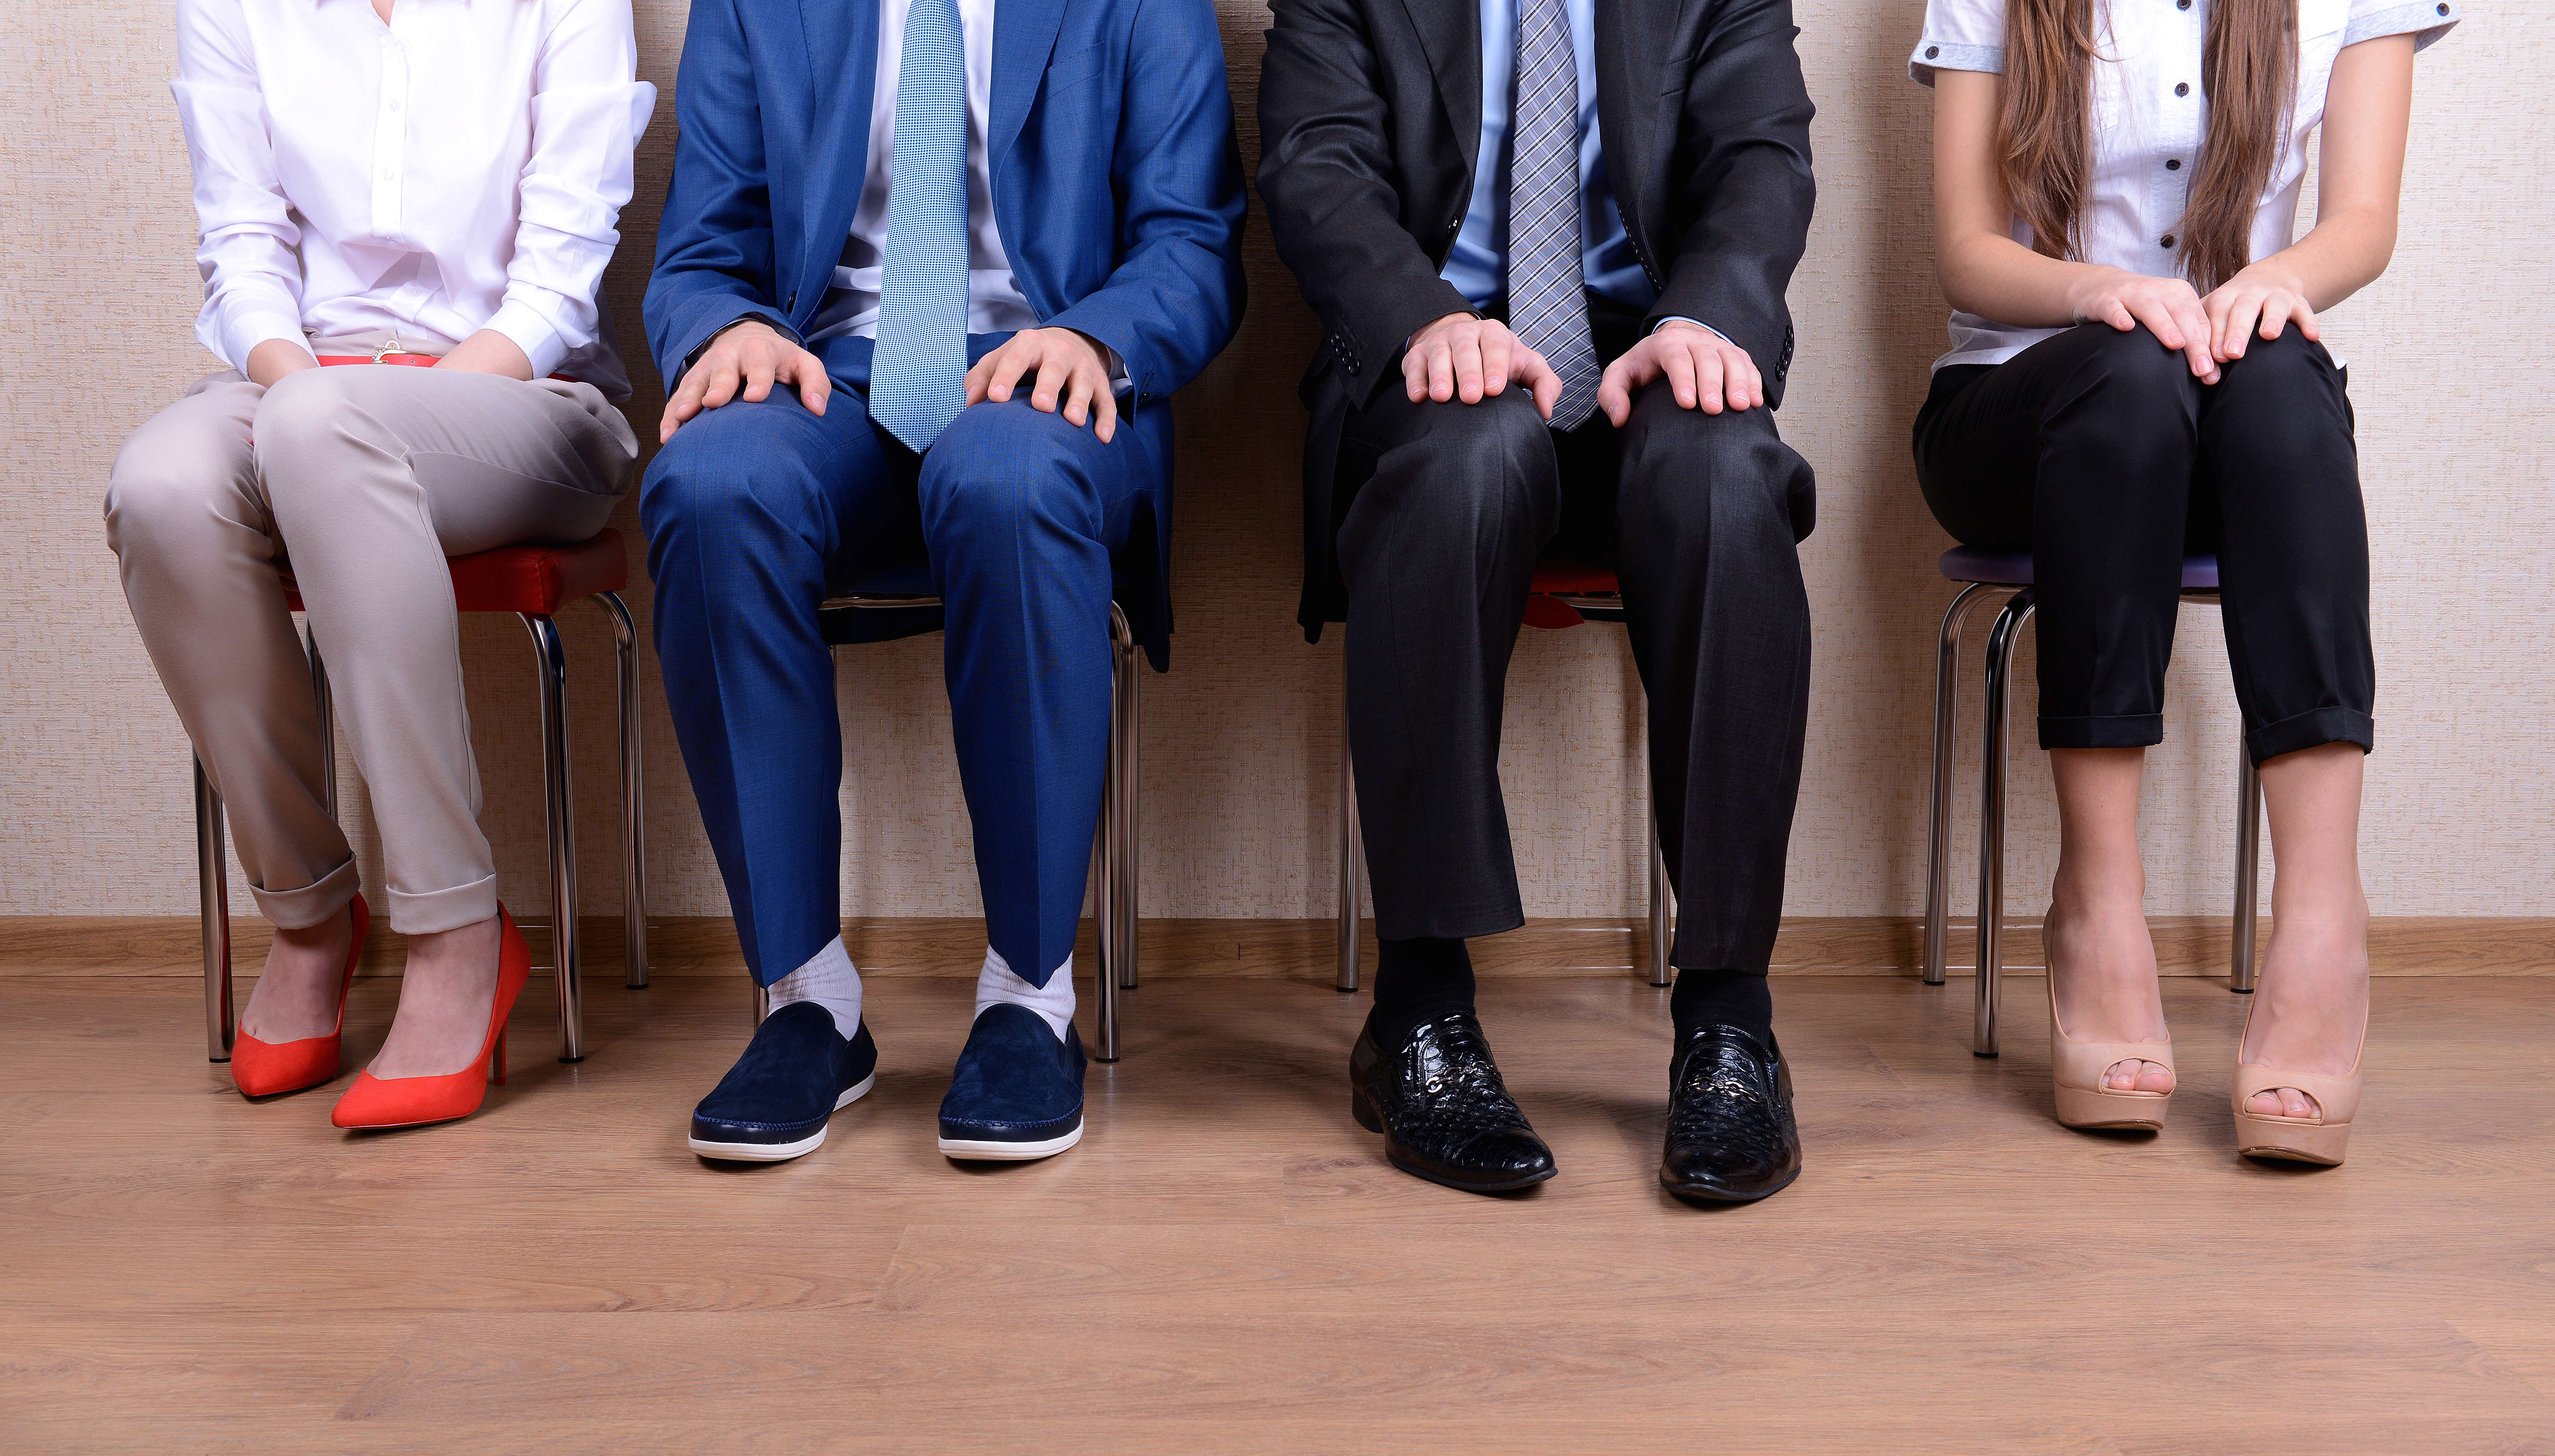 10 Questions You Should Ask in Your Next Marketing Interview